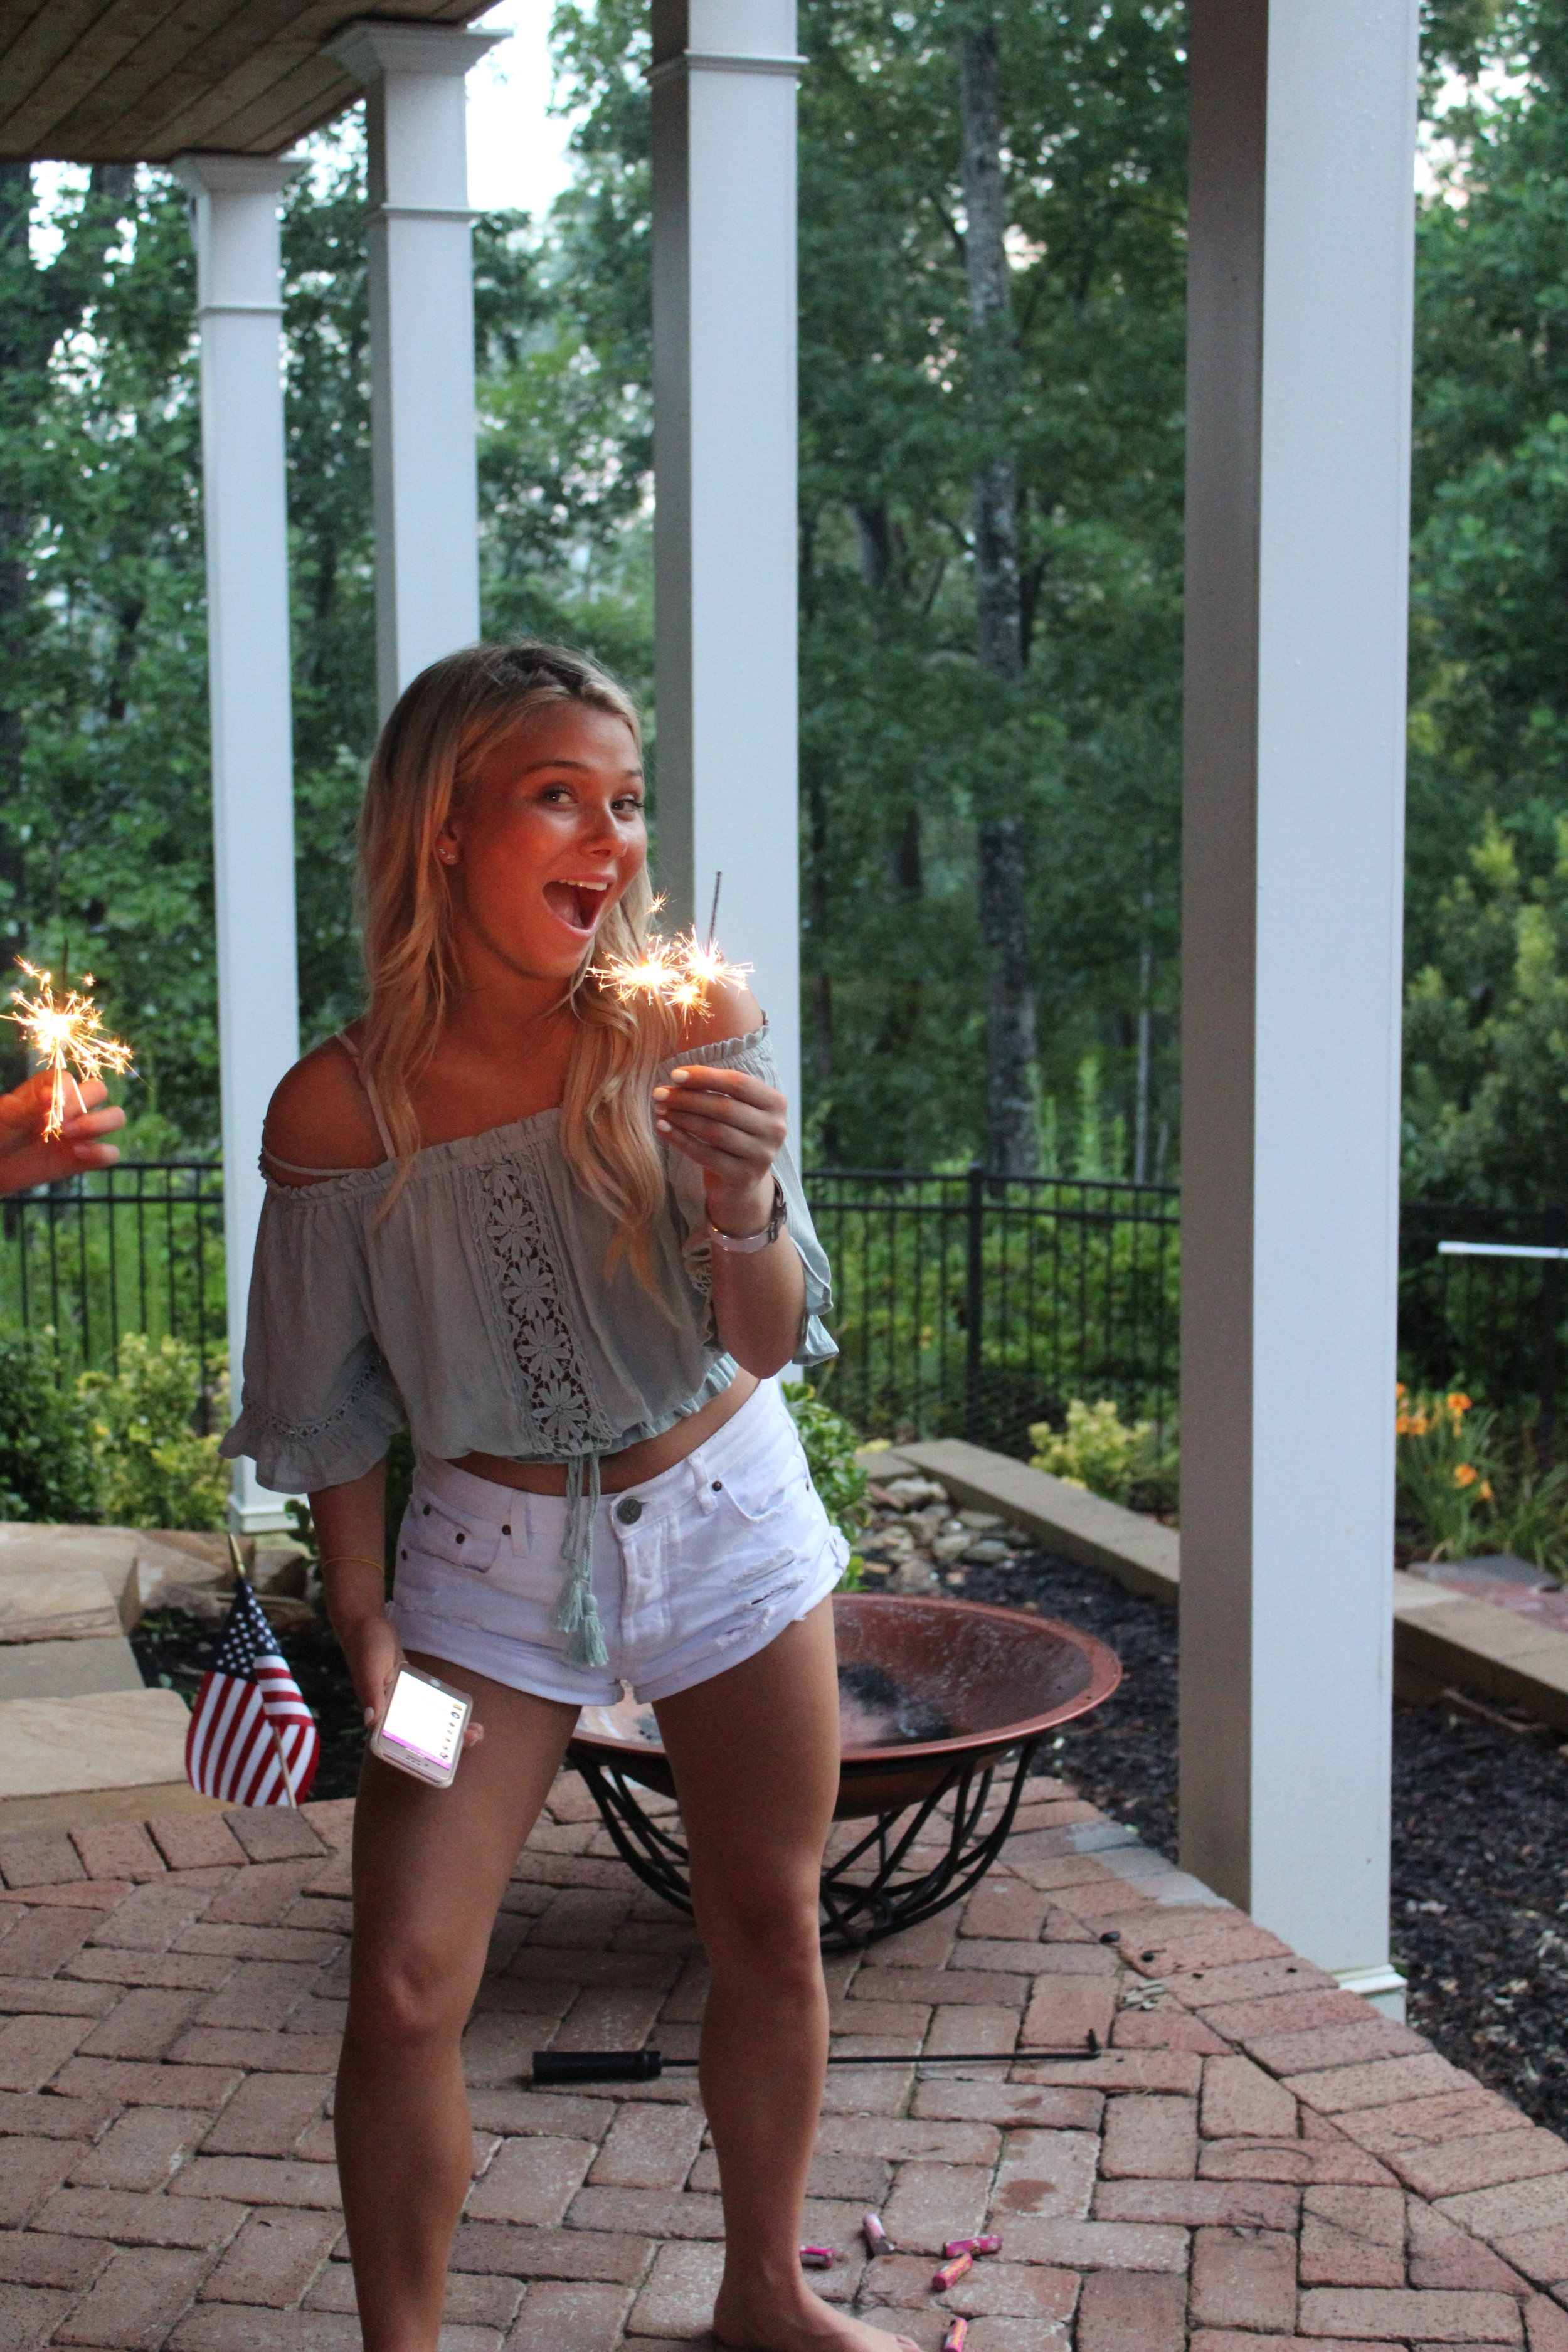 Avery charming the camera with her sparklers